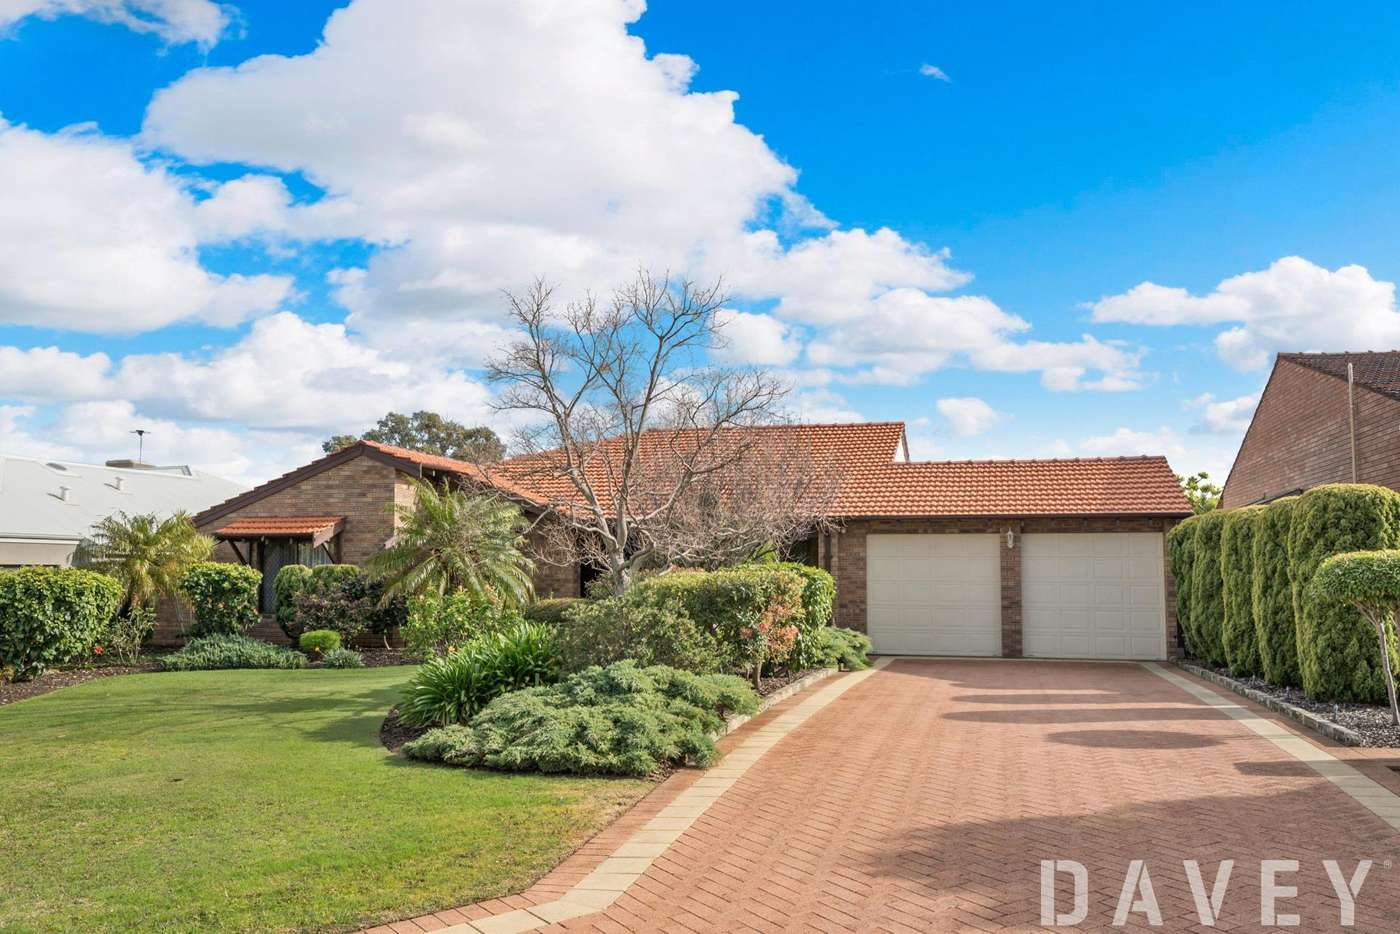 Main view of Homely house listing, 18 Celina Crescent, Kingsley WA 6026